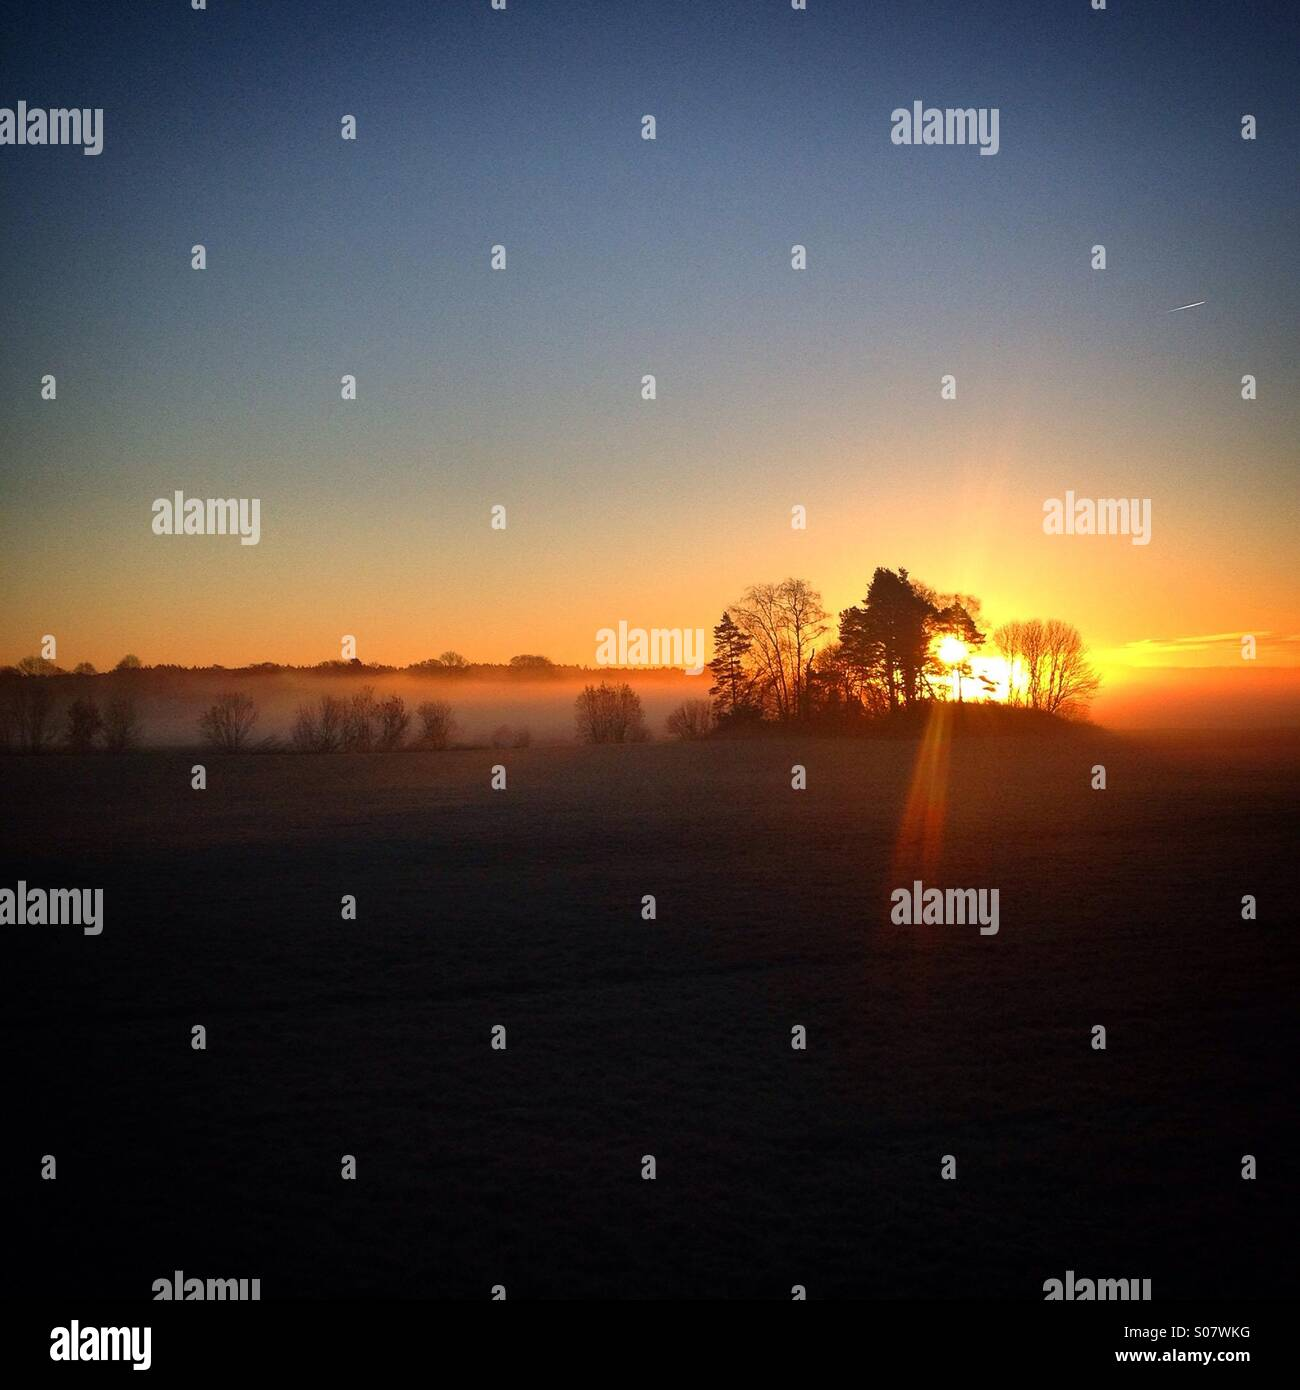 Sunrise over morning sea mist in the Åland archipelago in the Baltic Sea between Finland and Sweden - Stock Image